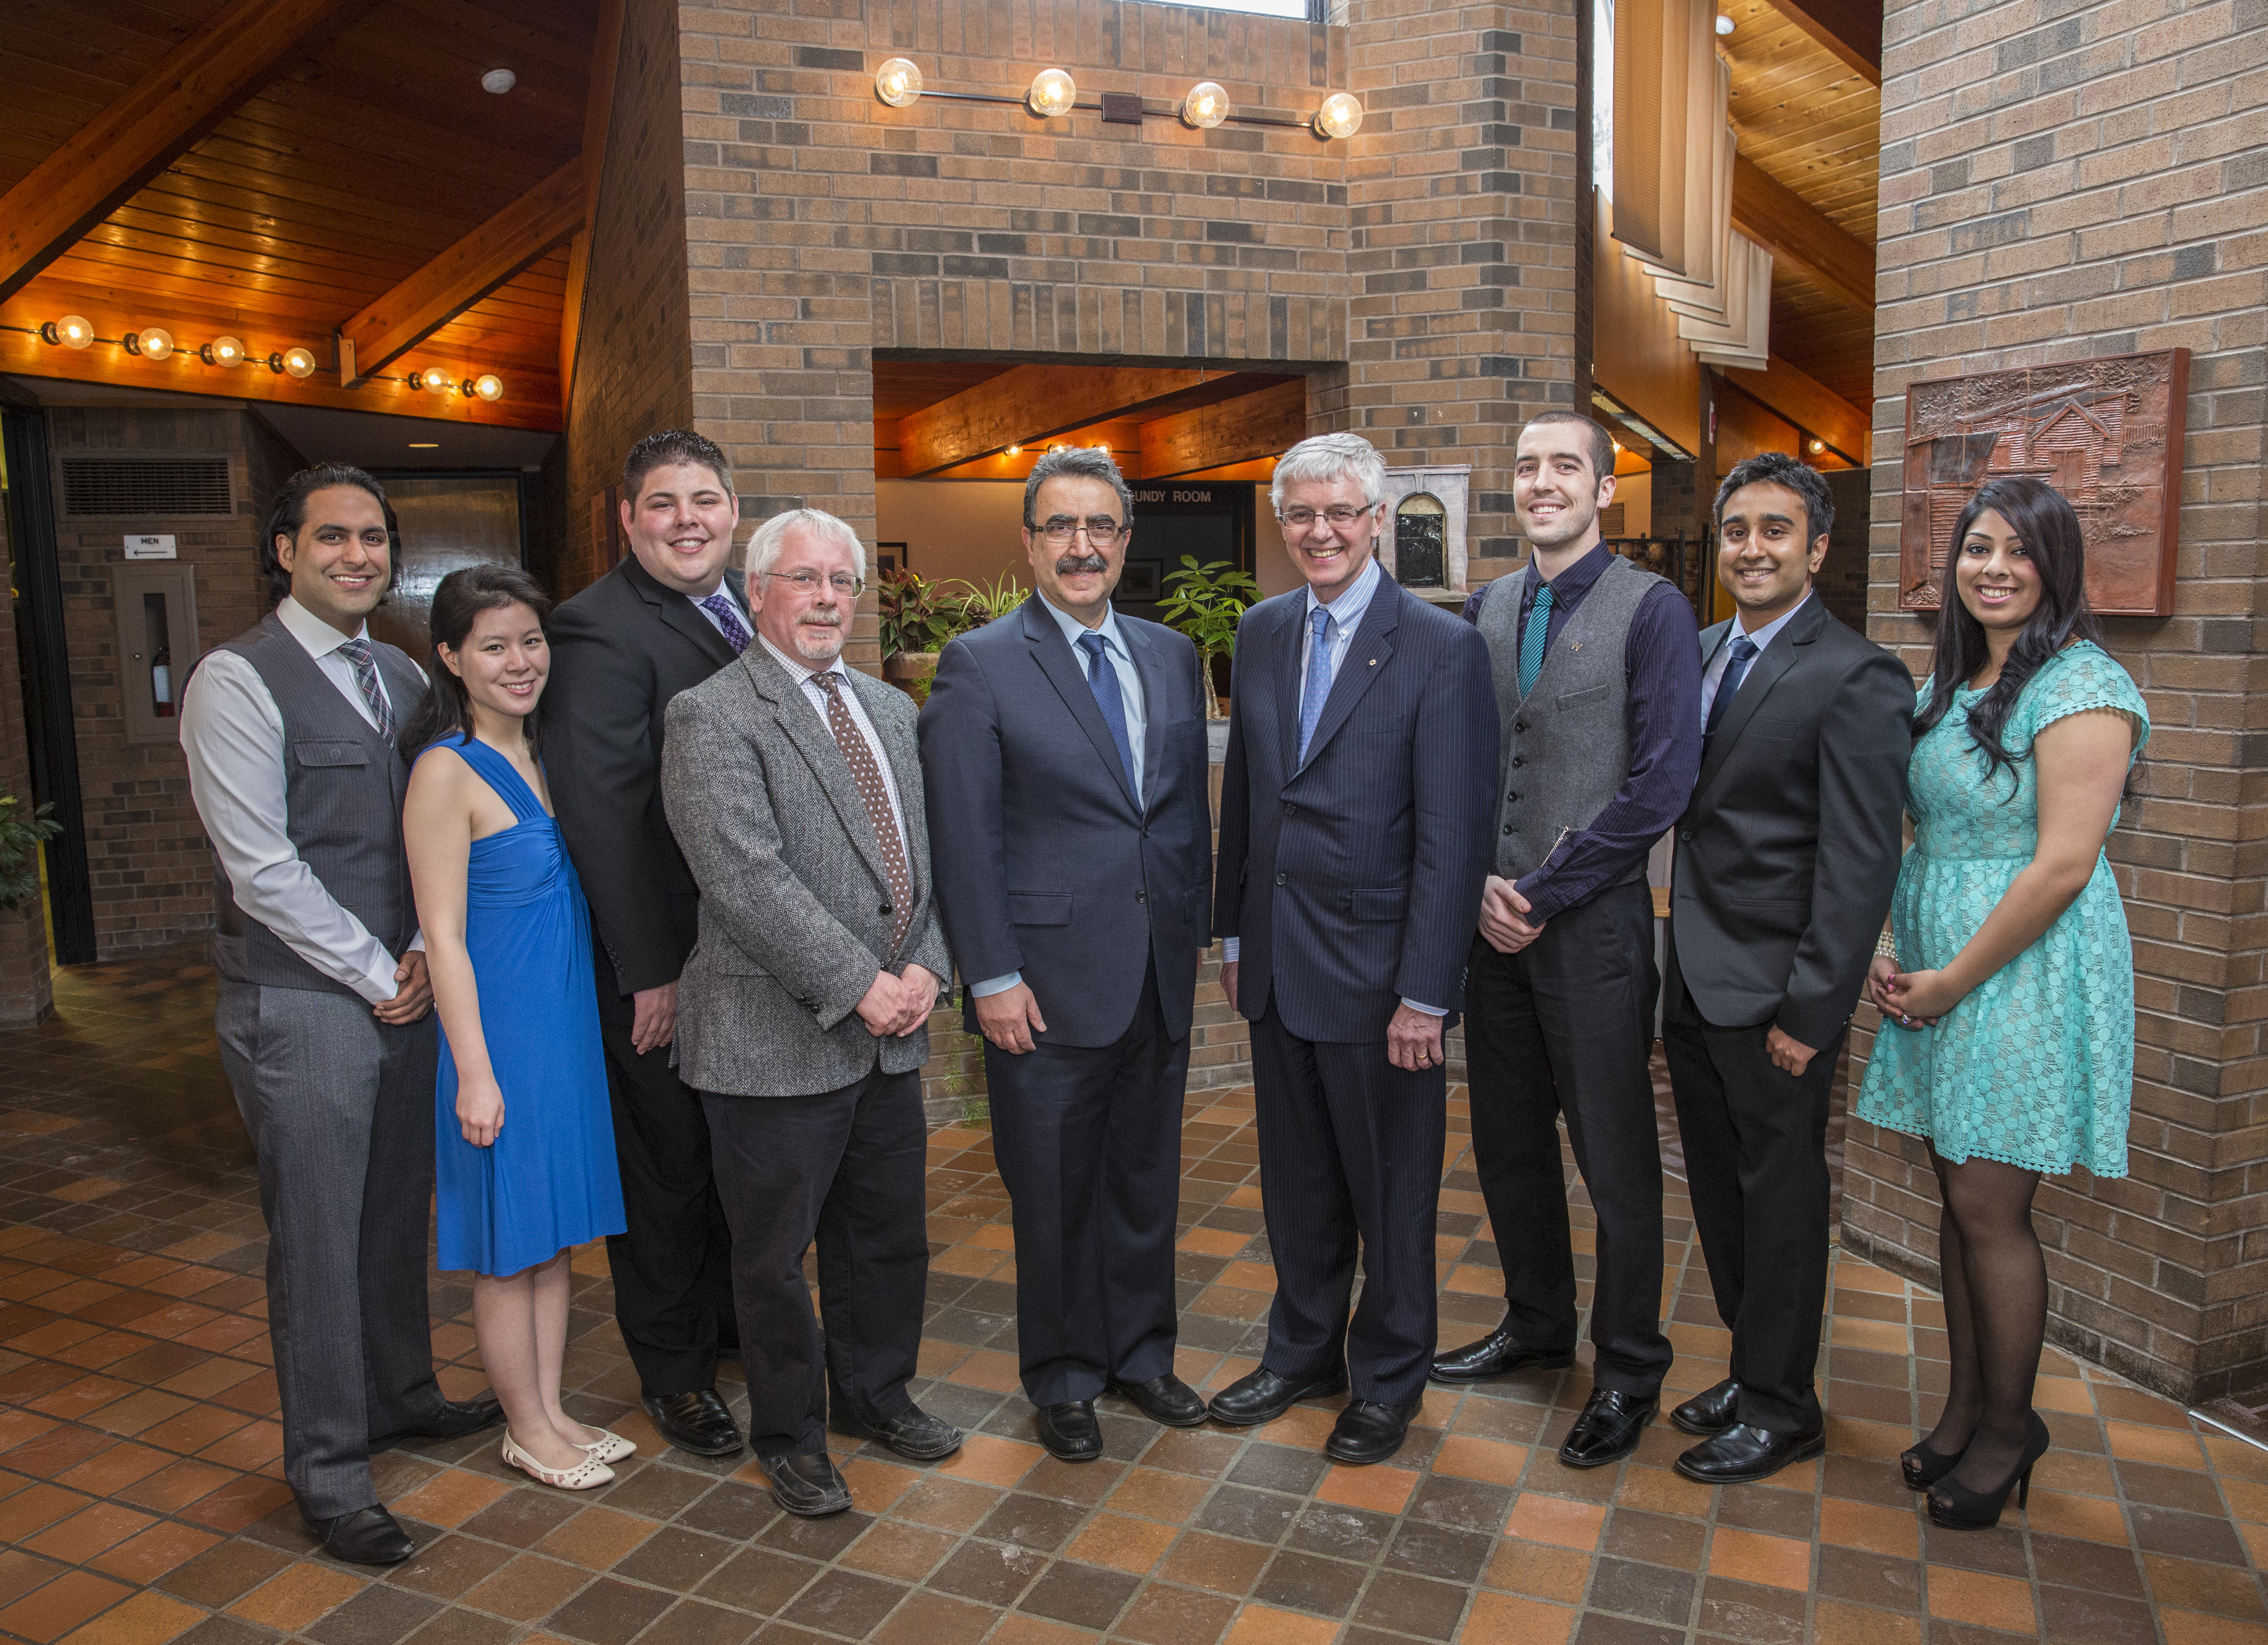 Master of Public Service students pose with Dean of Arts Doug Peers, President Feridun Hamdullahpur, and Kevin Lynch.